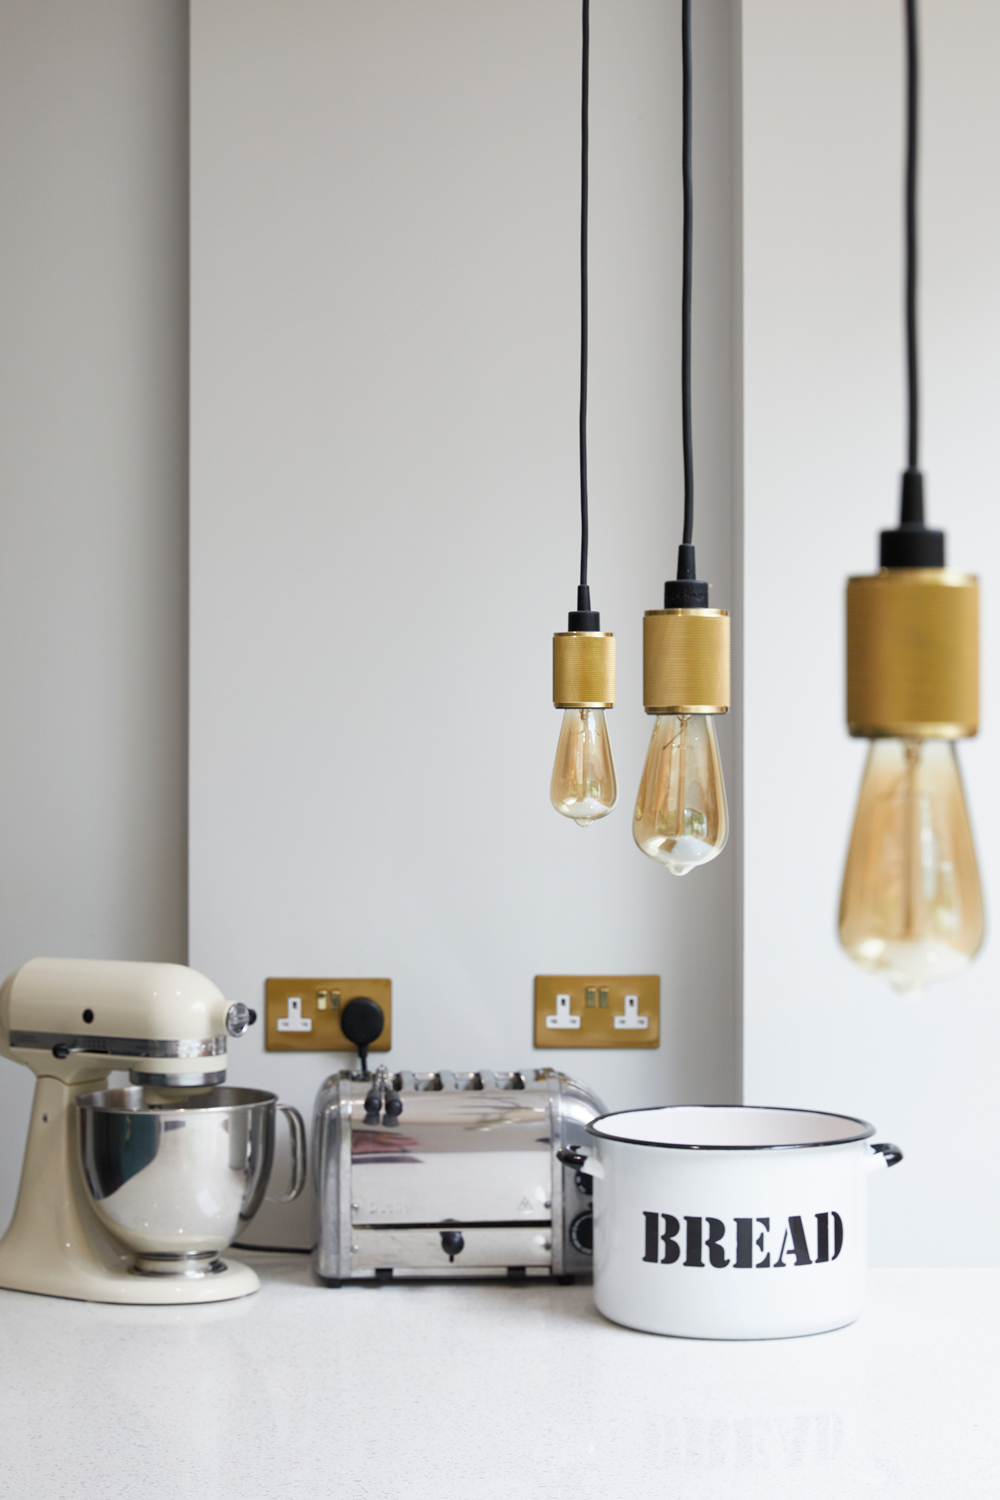 Toaster, Mixer and Bread post sit on white quartz worktop with heavy metal brass pendants by Buster and Punch hang above